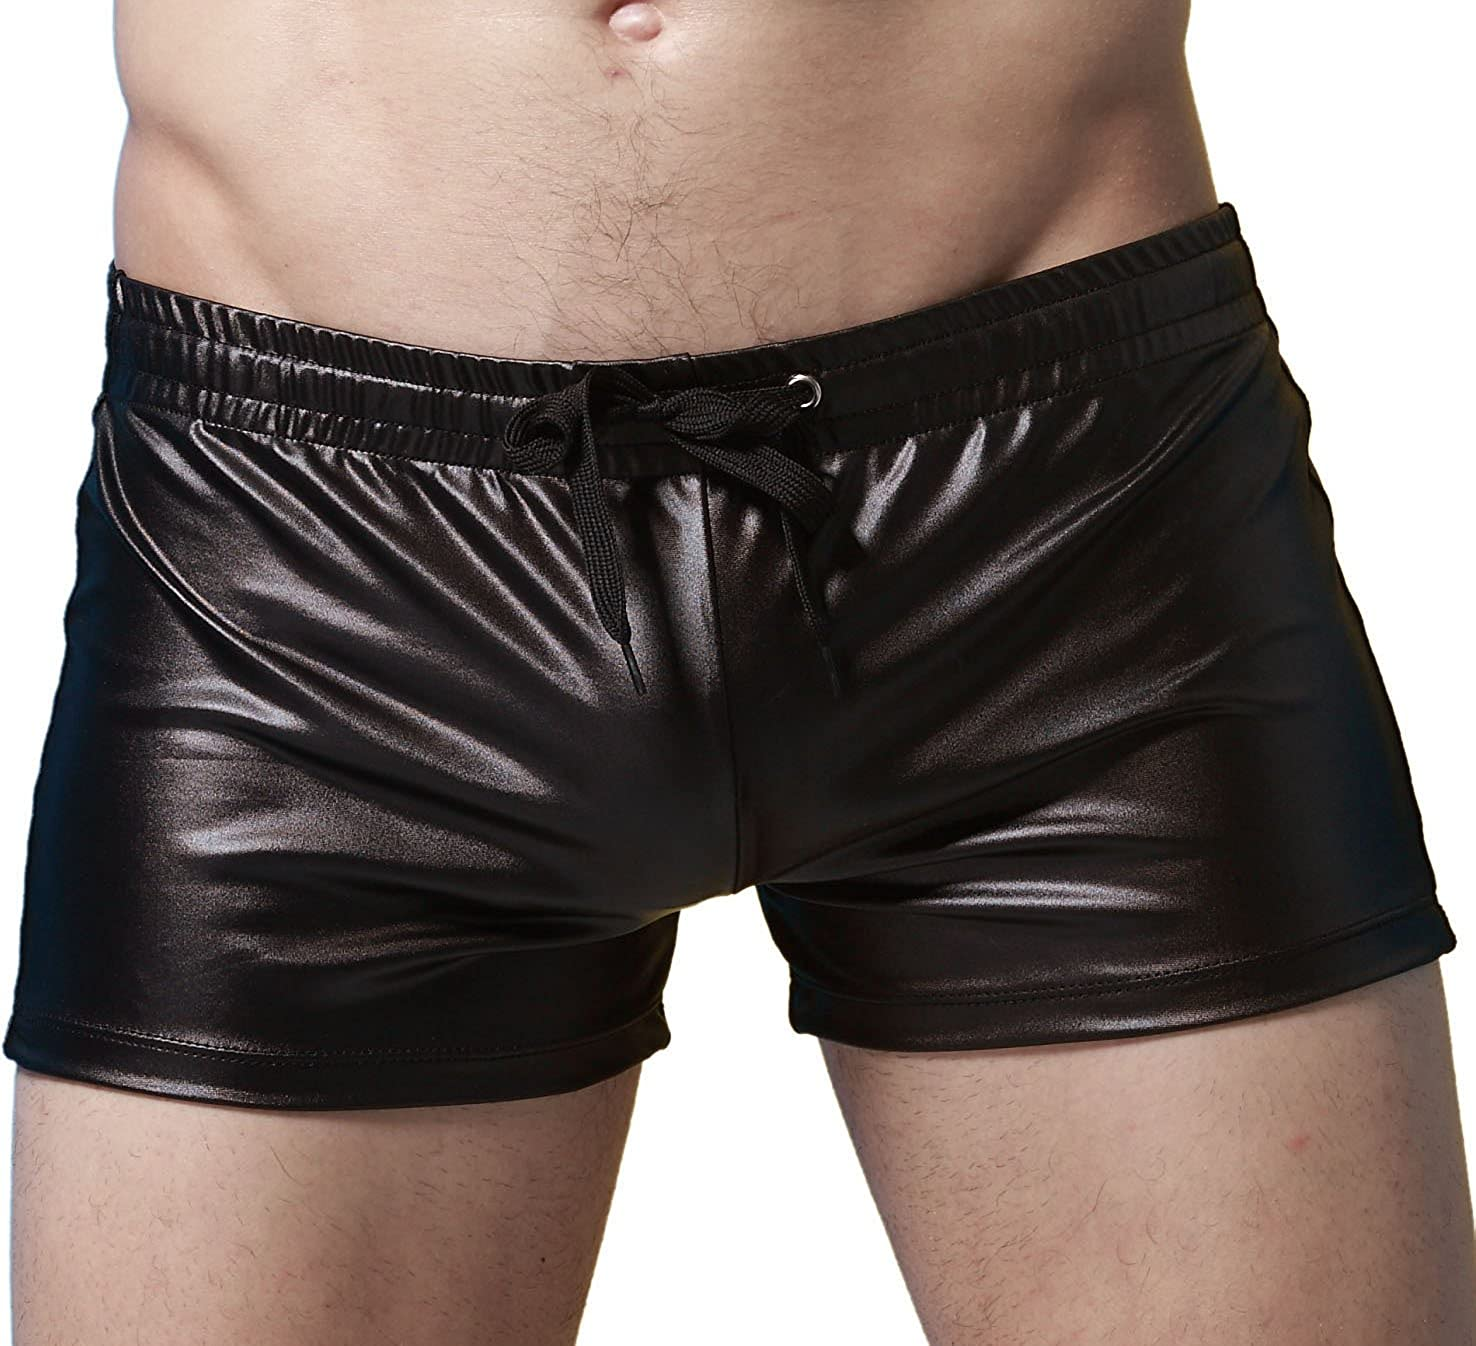 Men/'s Faux Leather Swim Shorts Swimwear Trunks Underwear Boxer Briefs Mini Pants